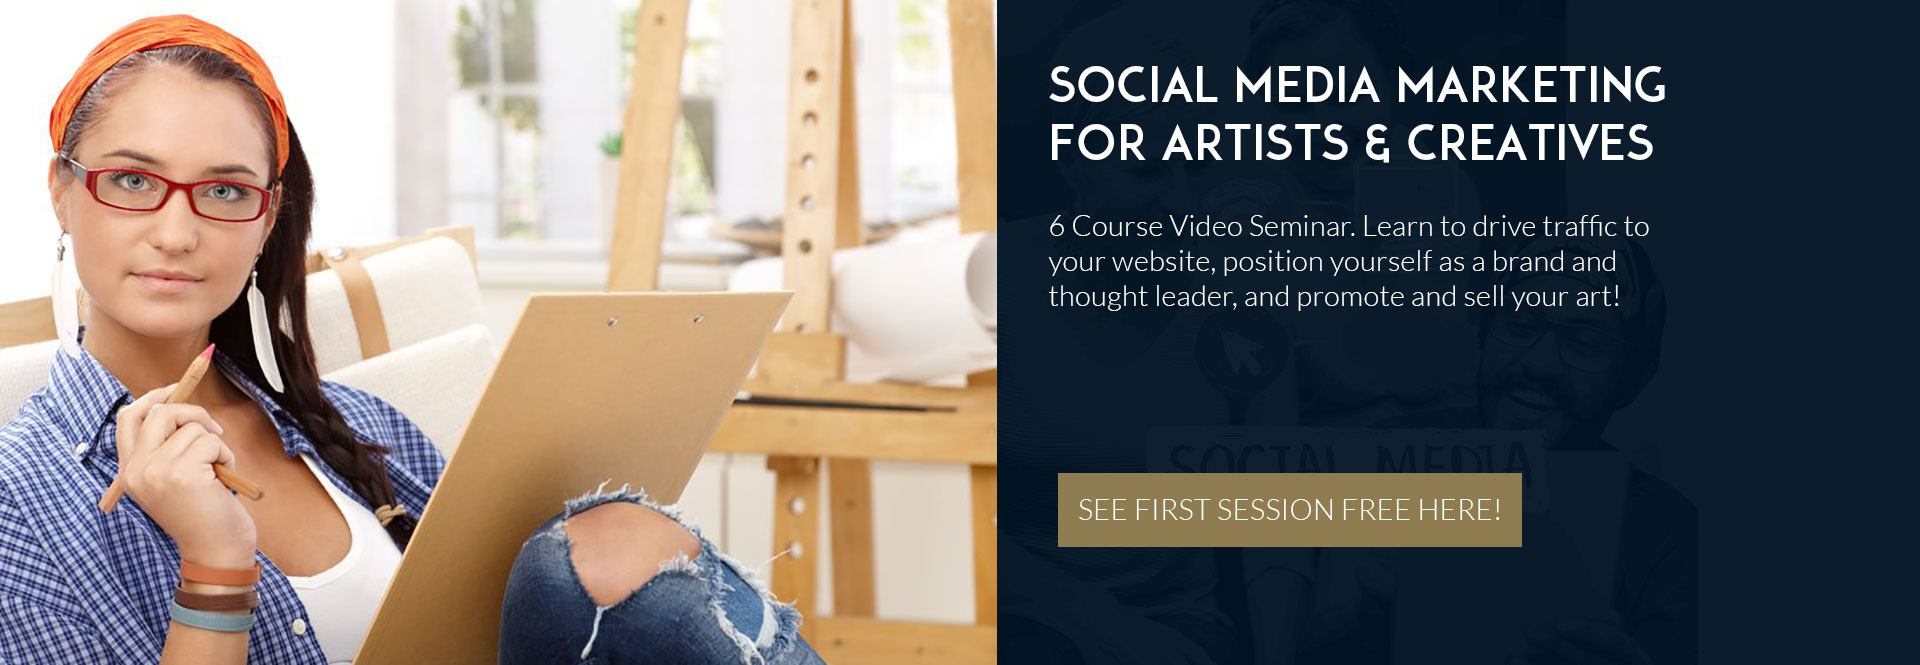 social media marketing for artists